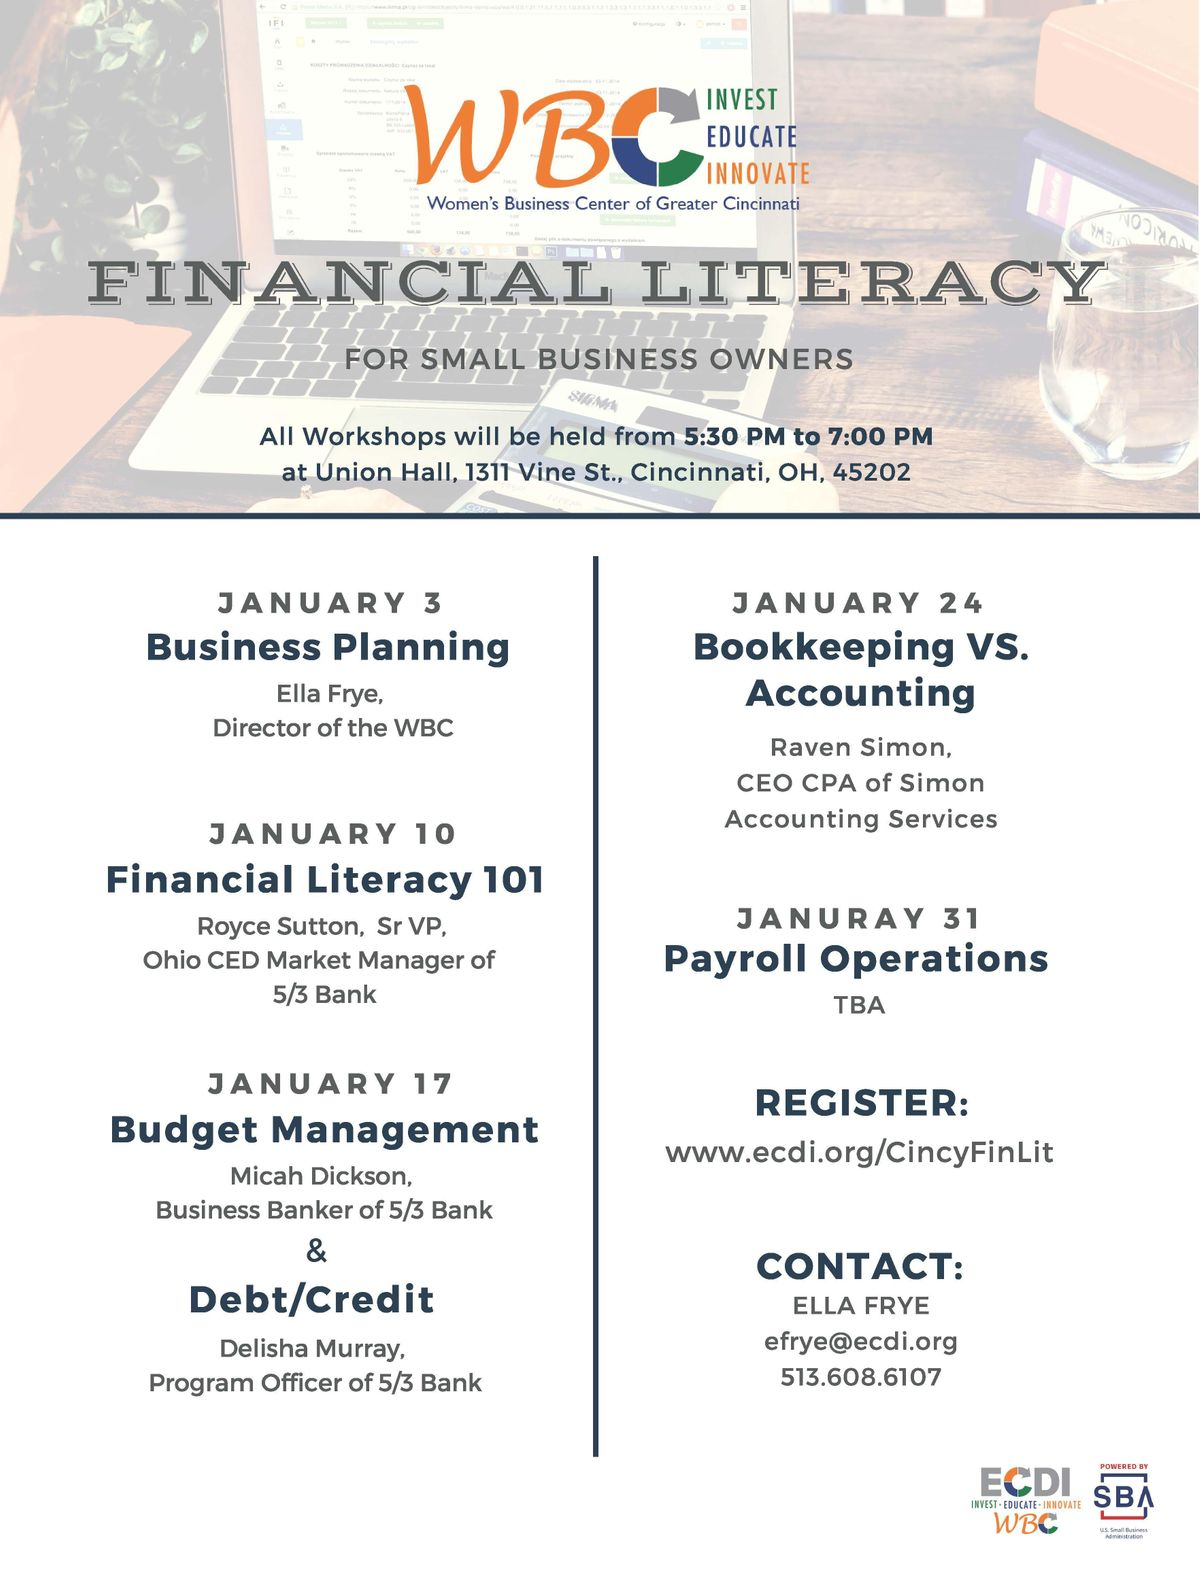 Financial Literacy - For Small Business